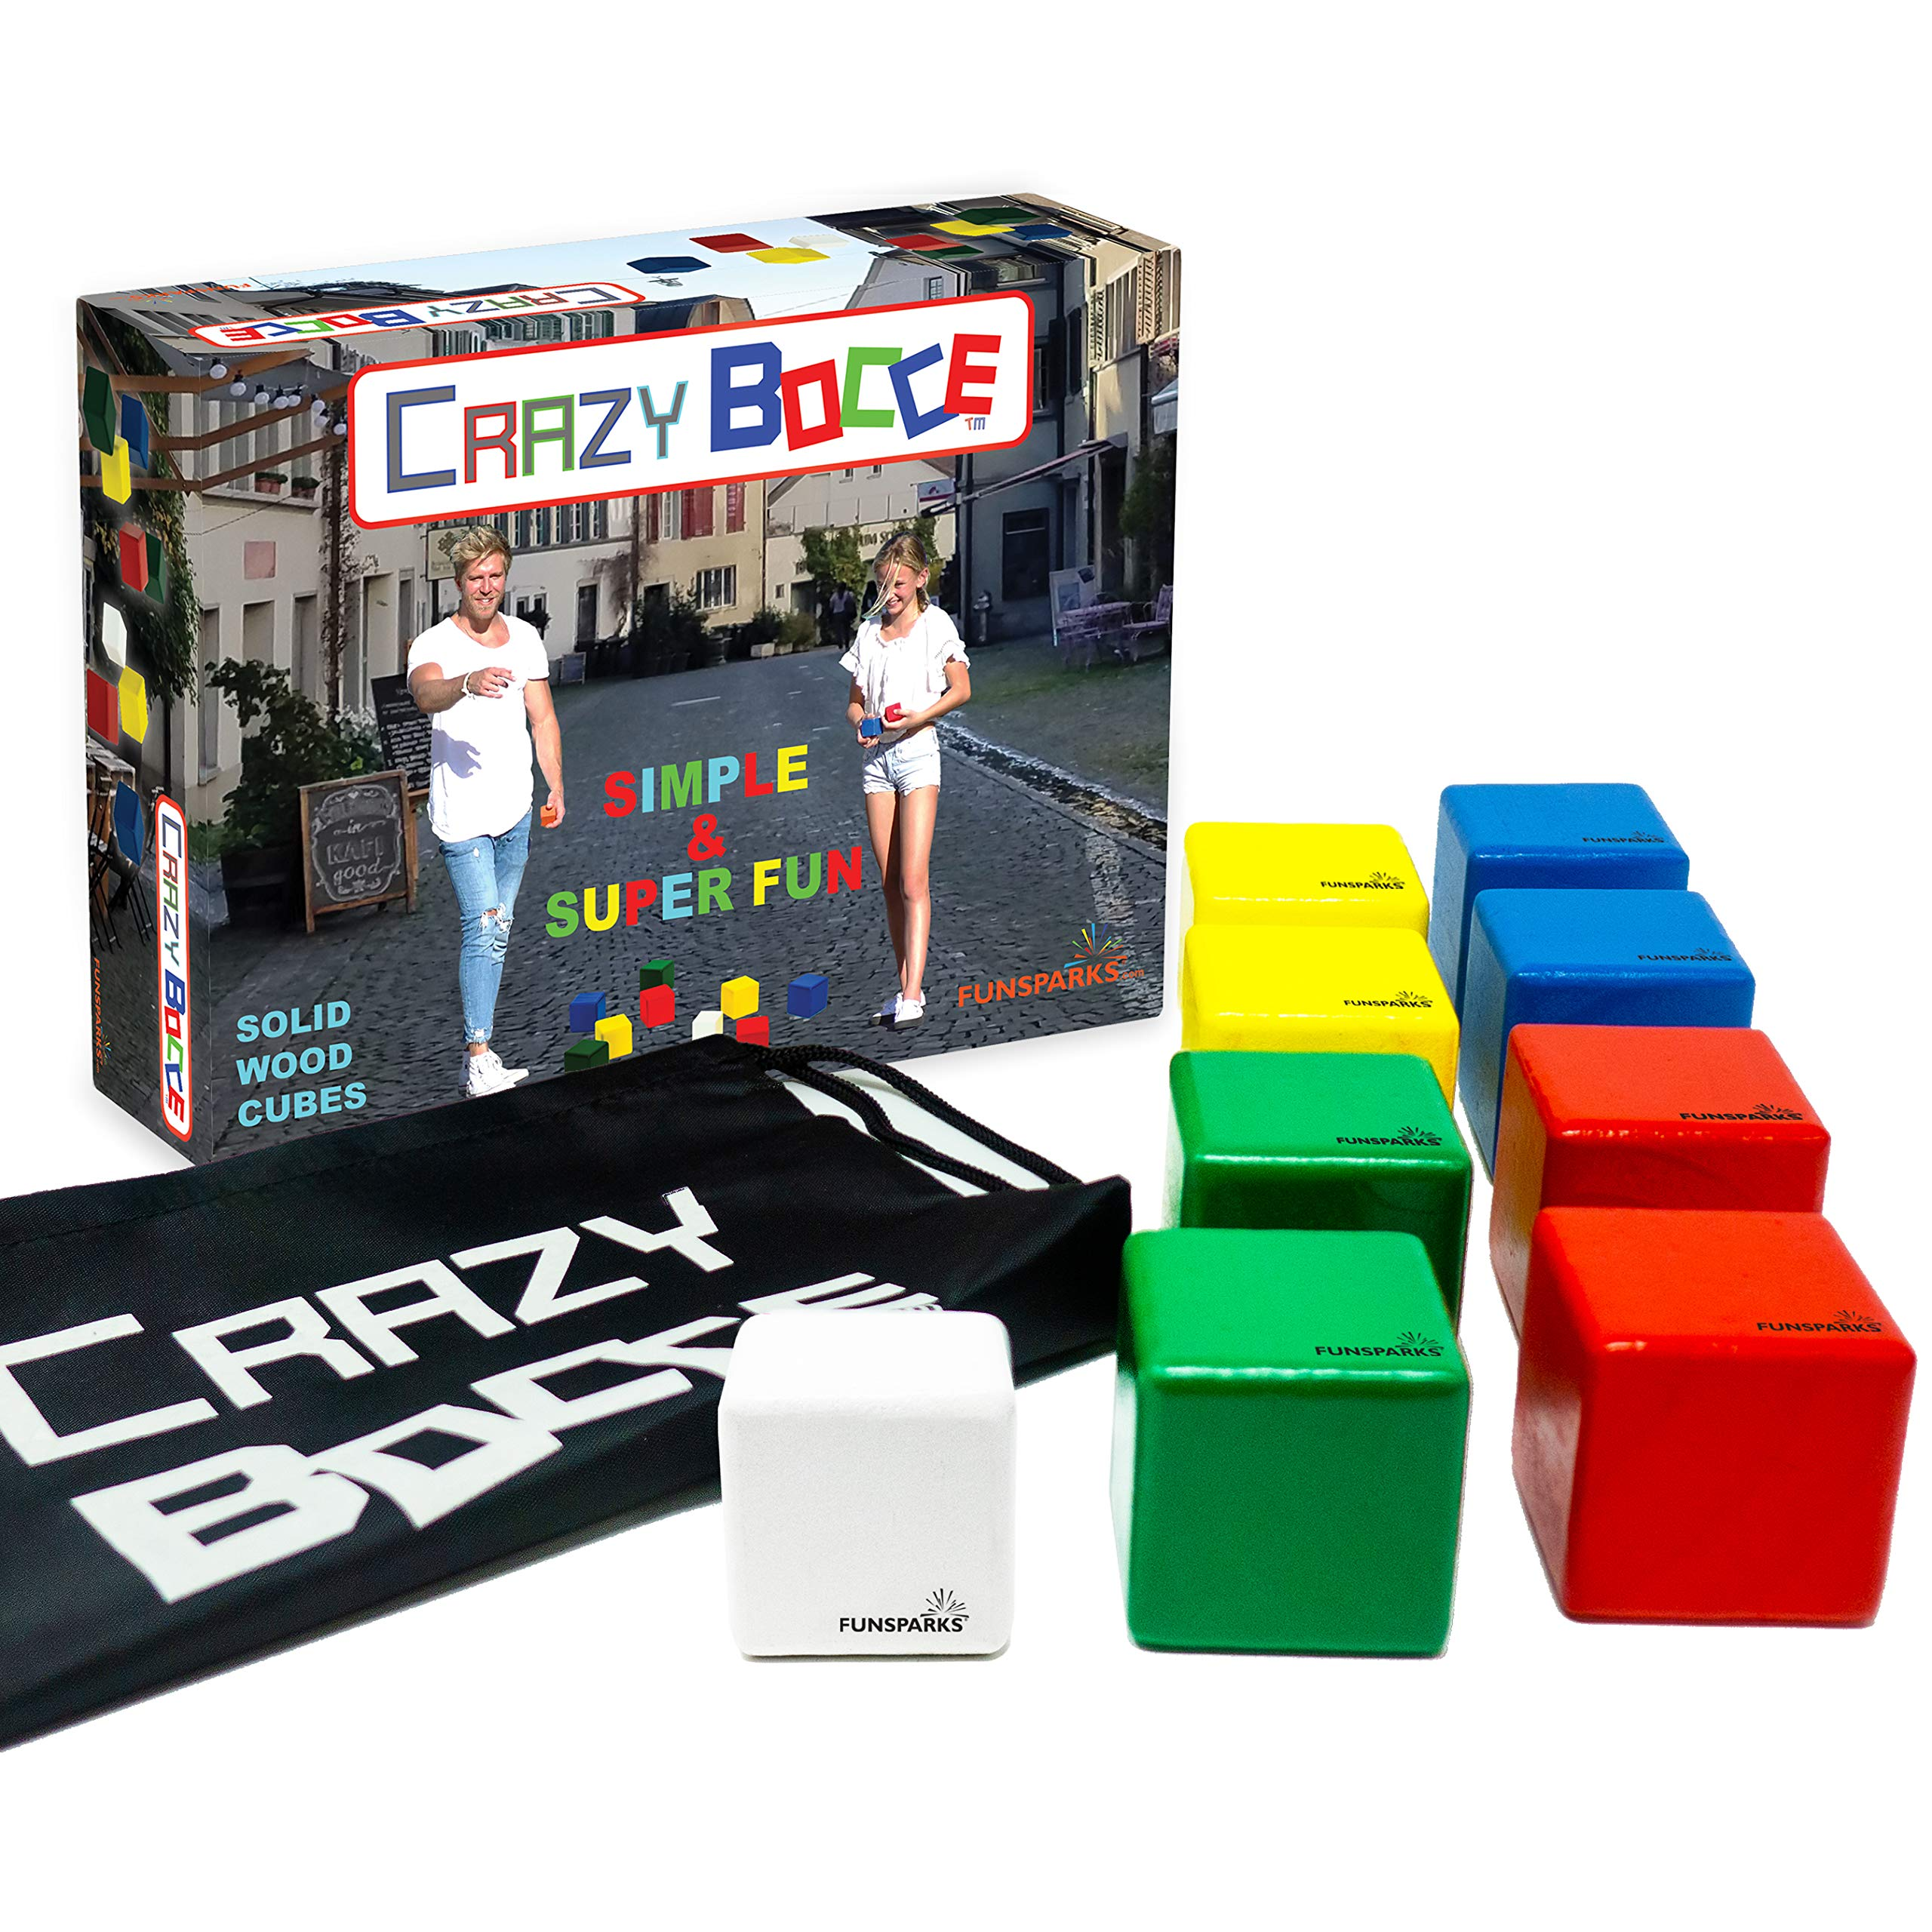 Funsparks Crazy Bocce Indoor, Outdoor Family Fun Street Bocce for Kids - Play on The Driveway, Park, Lawn or Just About Anywhere by Funsparks